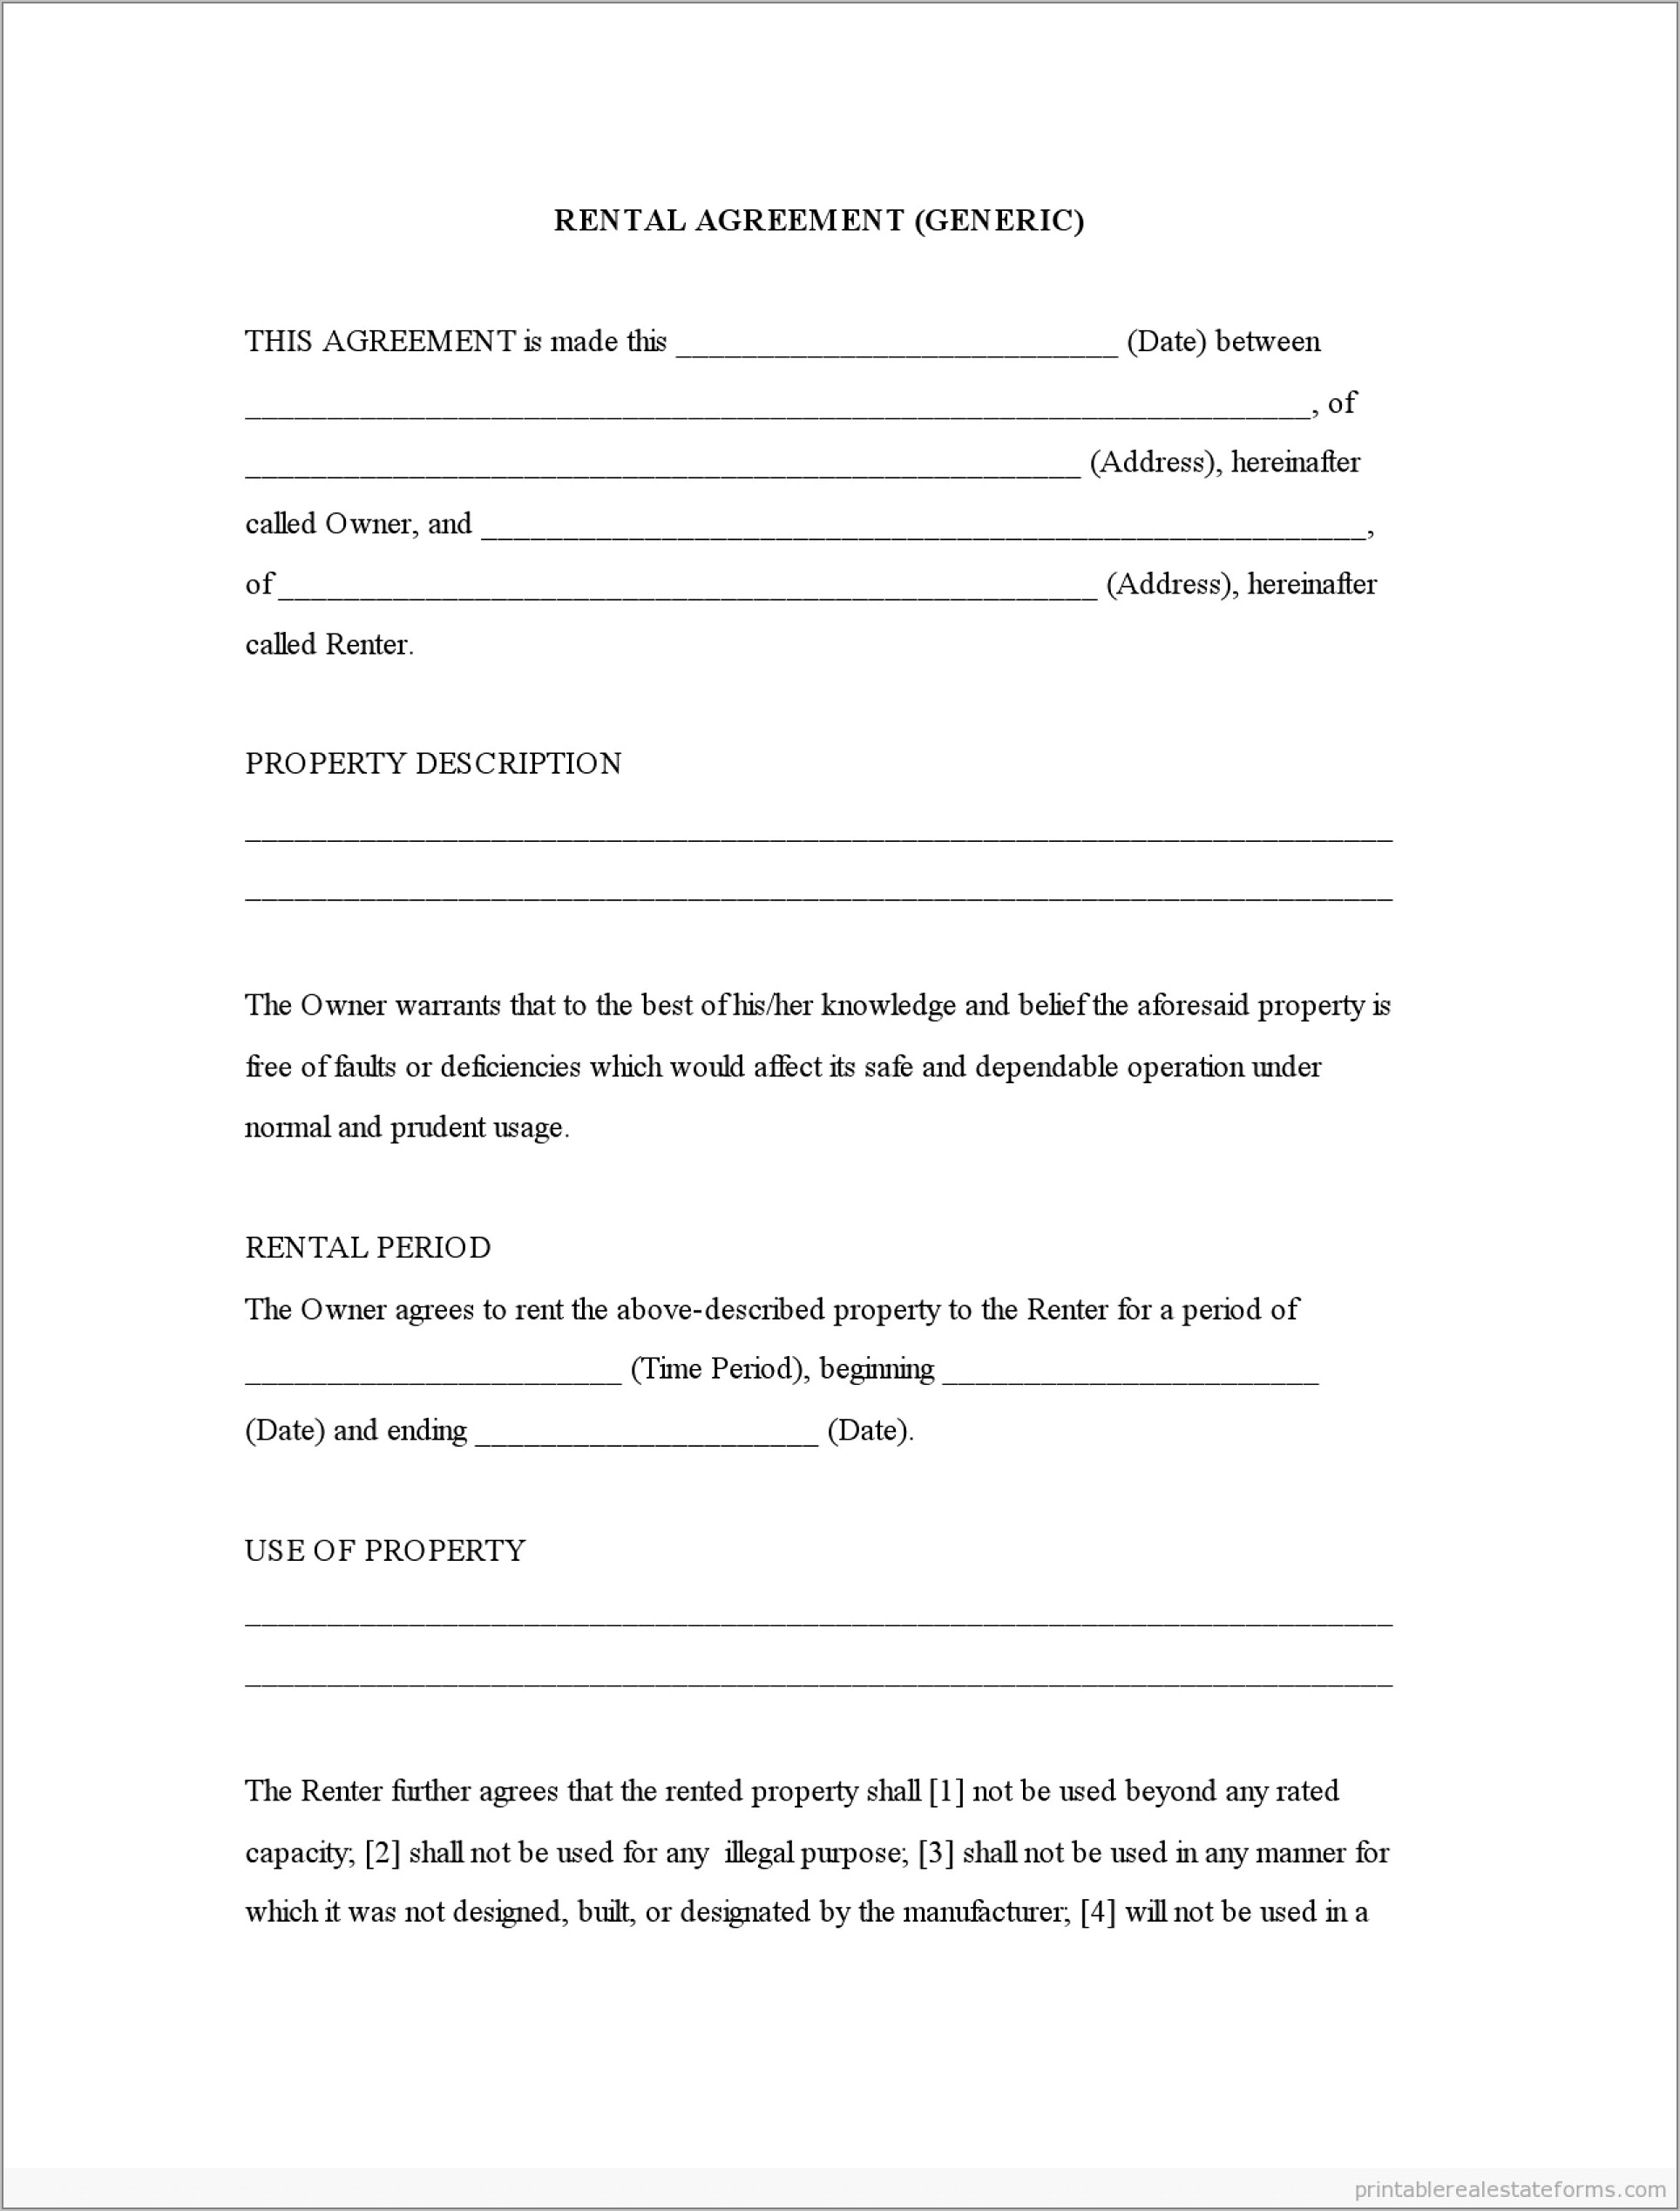 Tenancy Agreement Template Free Download Malaysia